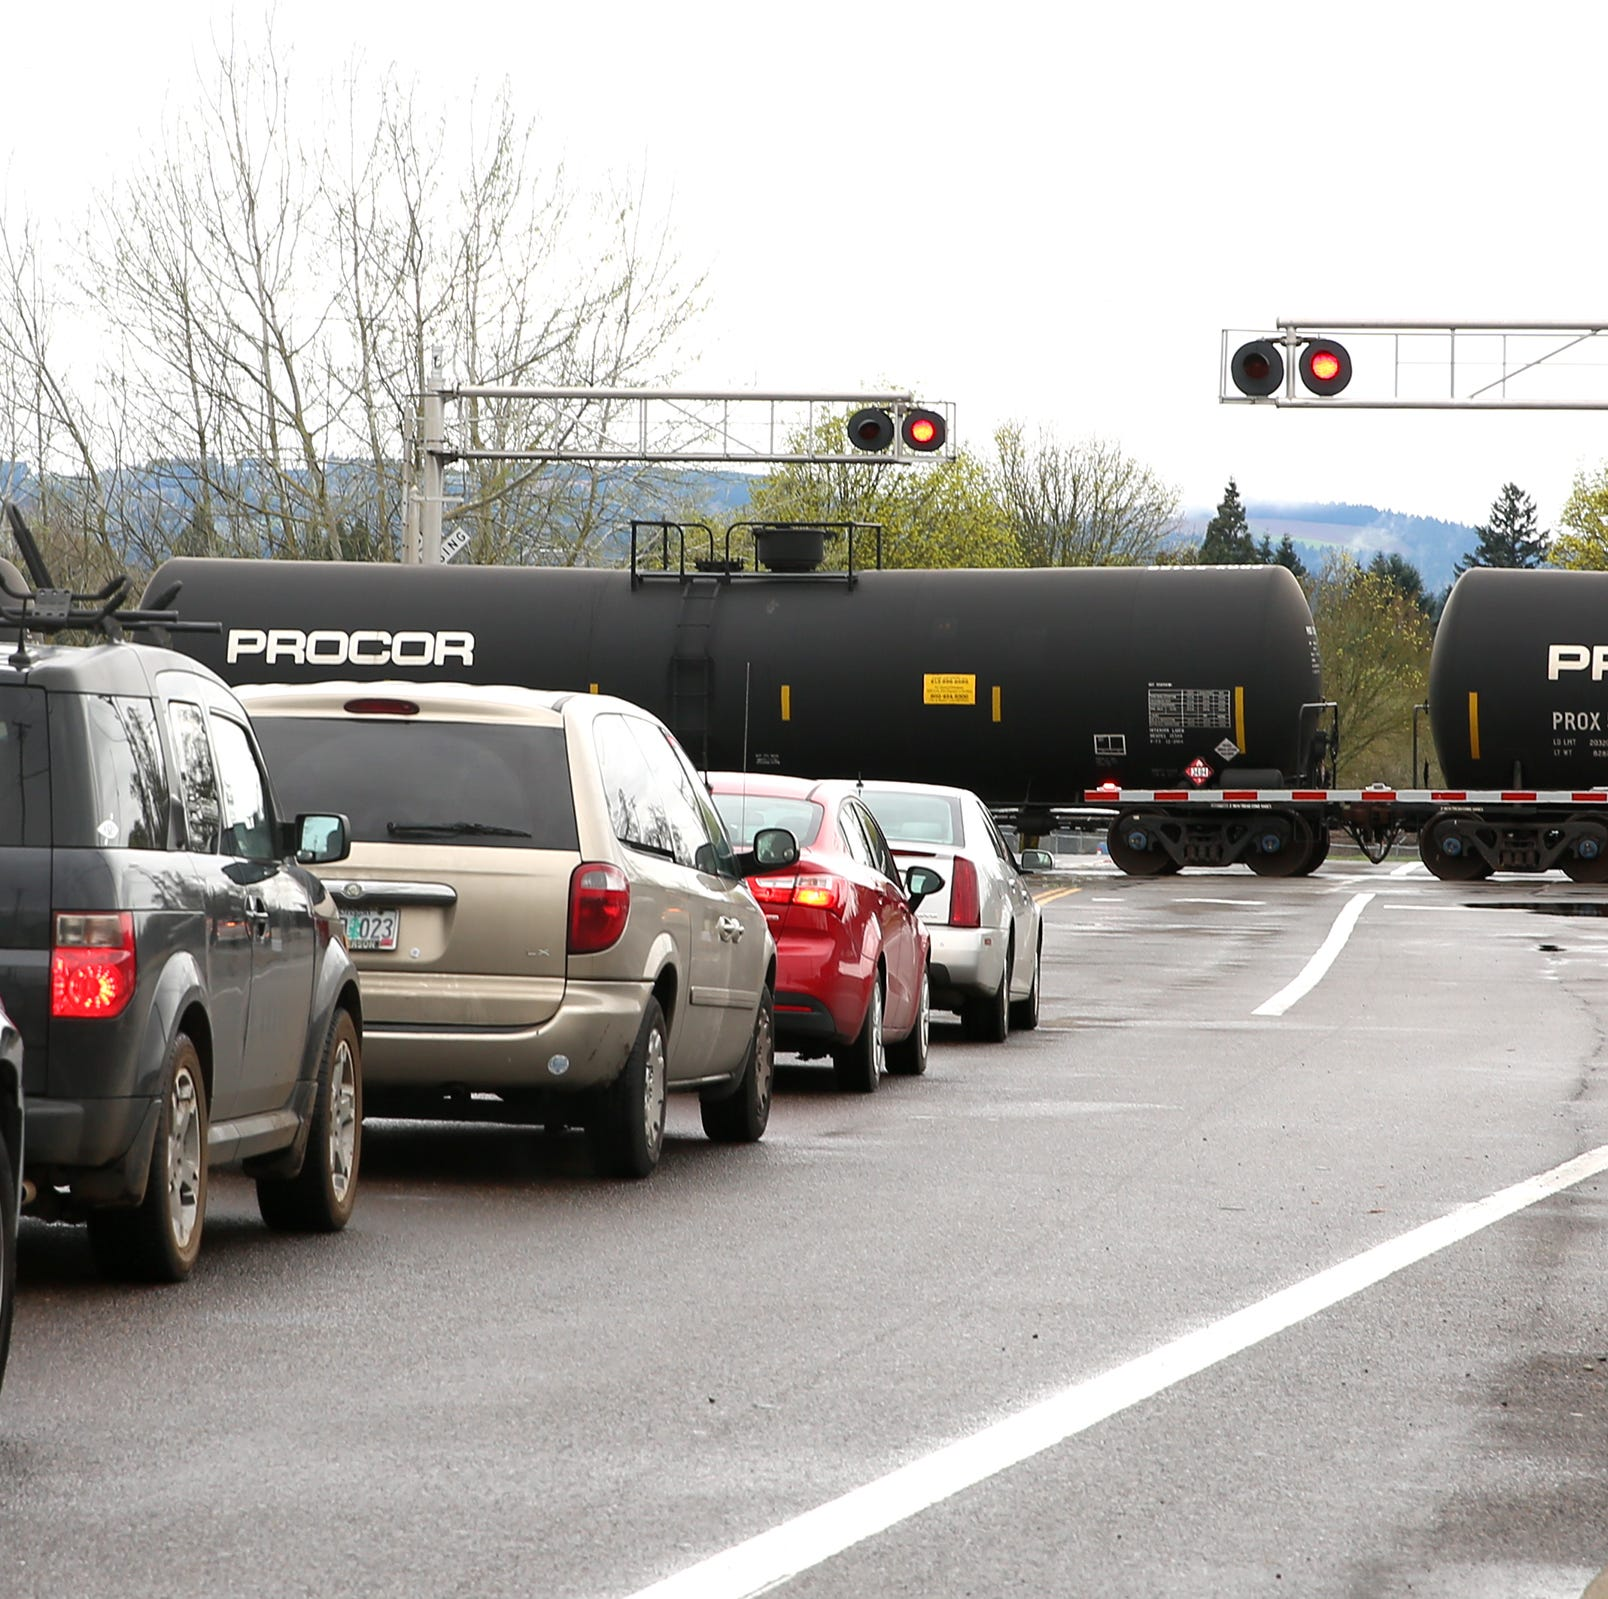 Train strikes woman near Portland Road in Salem, Hyacinth Street NE blocked